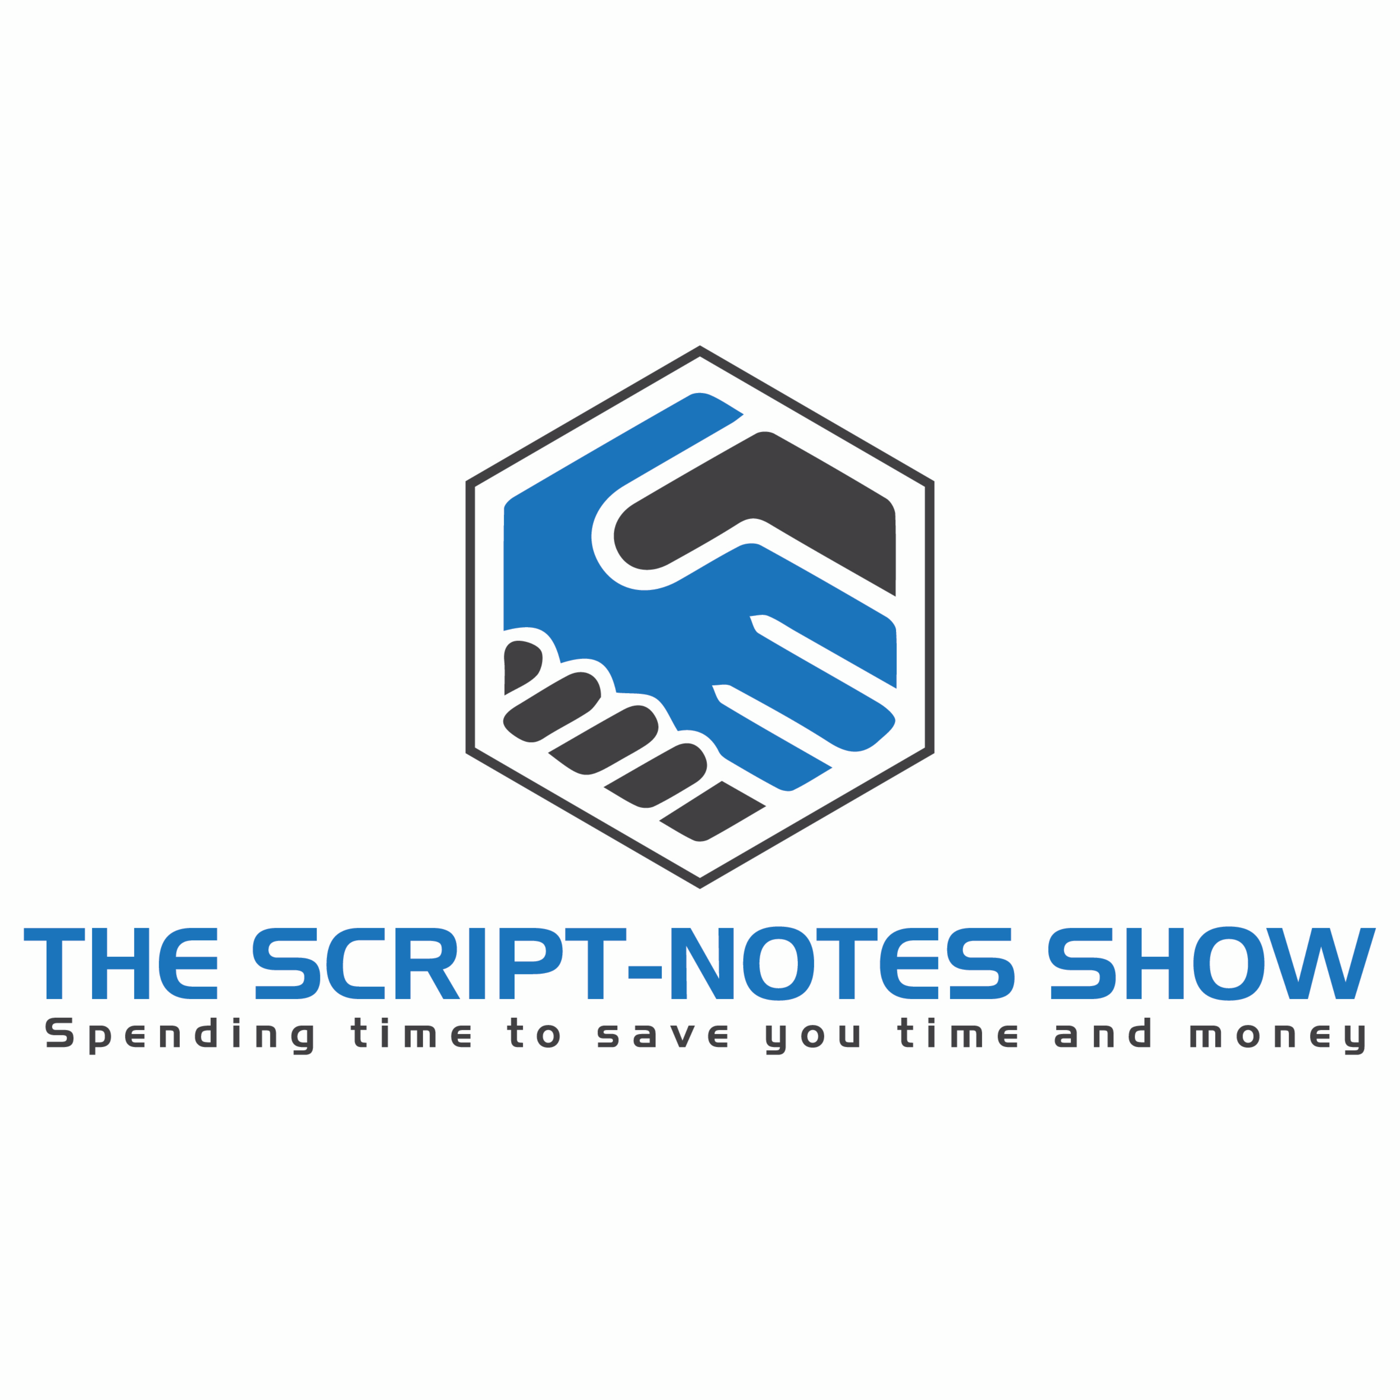 The Script-Notes Show album art